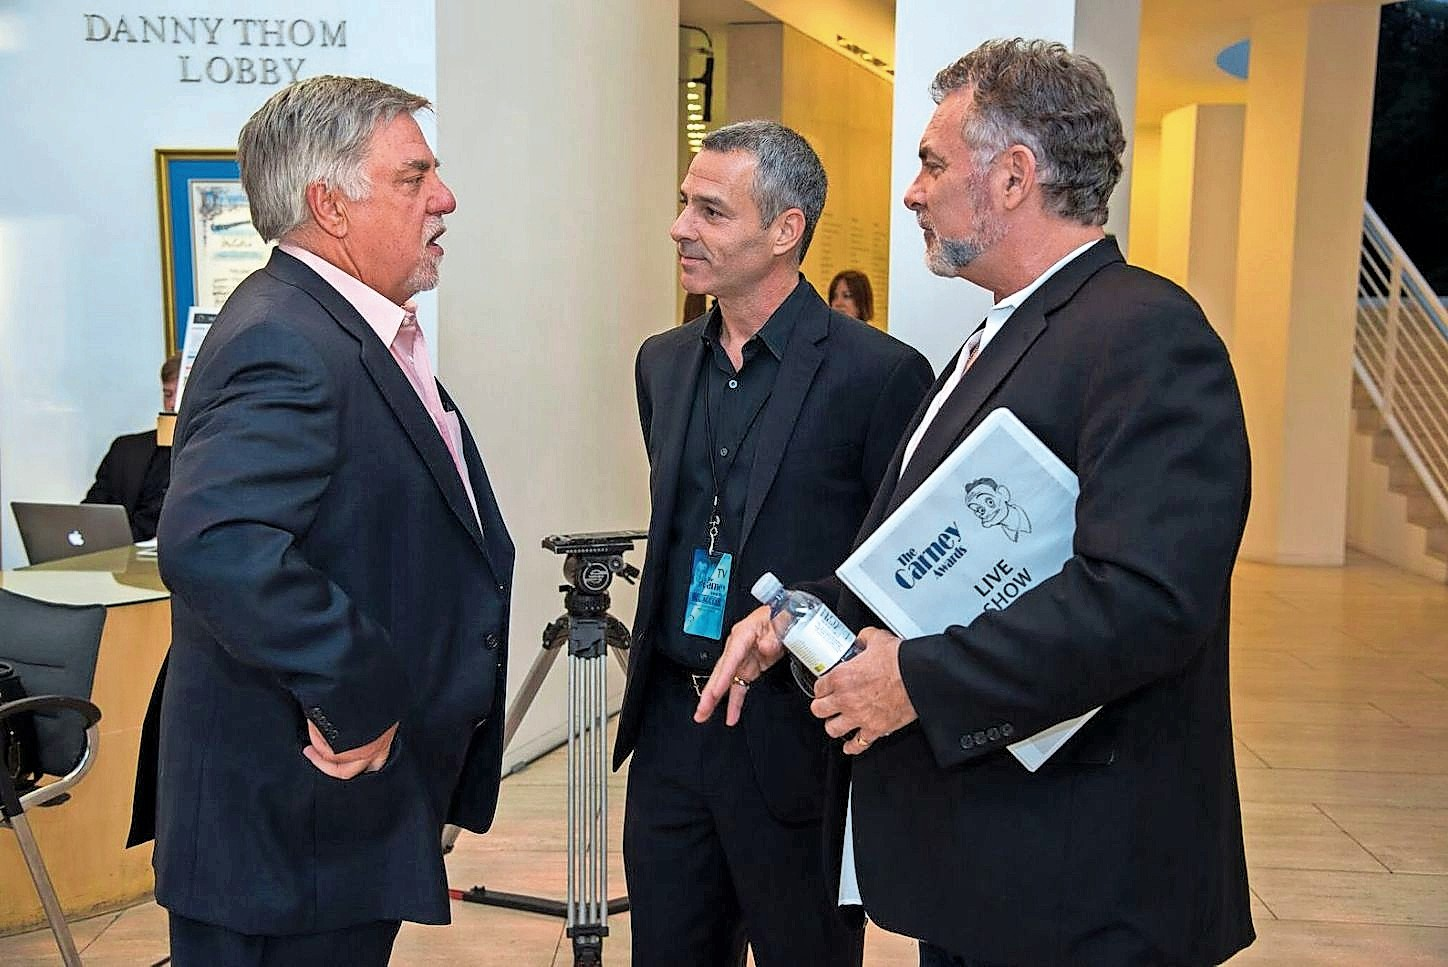 David and Jim Katz, center and right, spoke with actor Bruce McGill, who was honored at a previous ceremony of theirs.